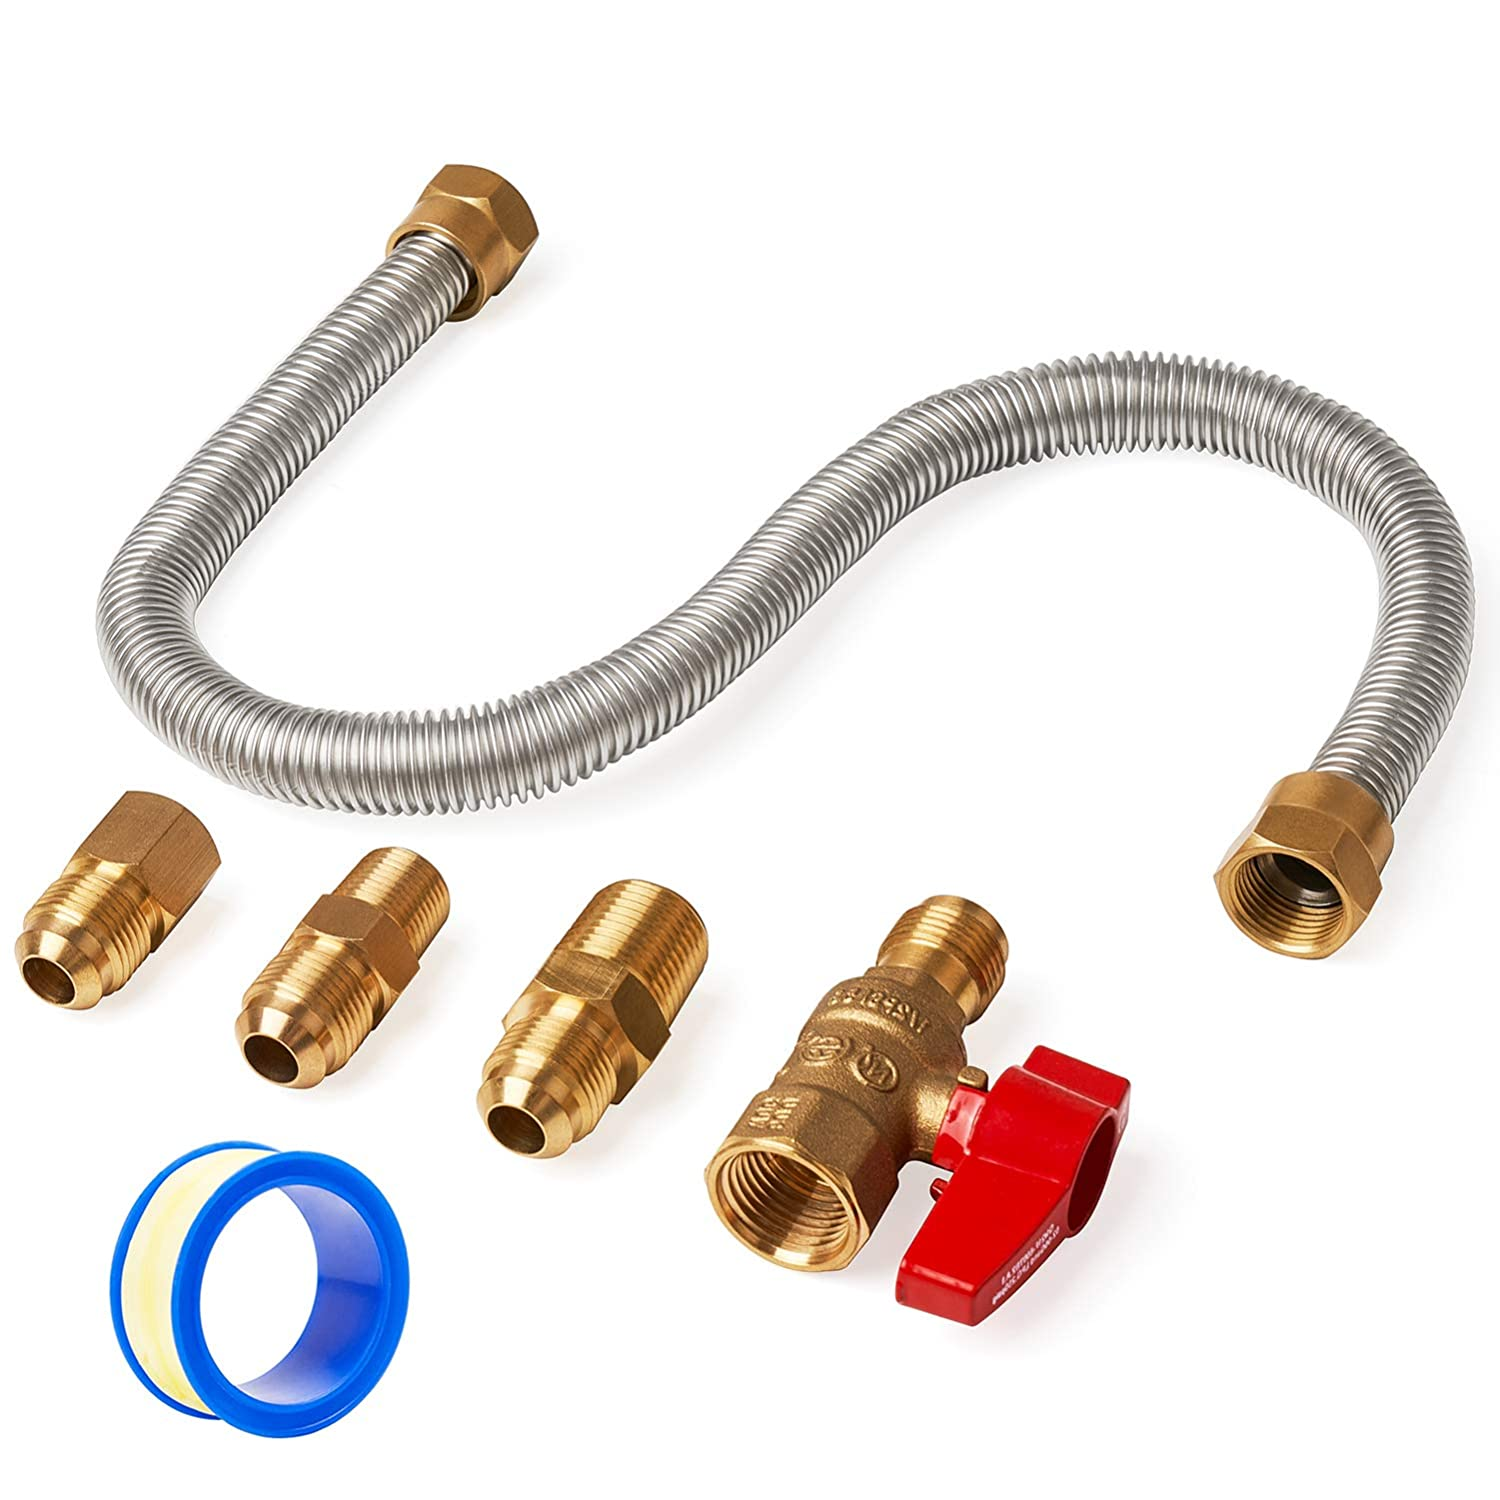 GASPRO One Stop Gas Appliance Hook Up Kit - Brass Gas Ball Valve and Flexible Gas Connector w/Fittings